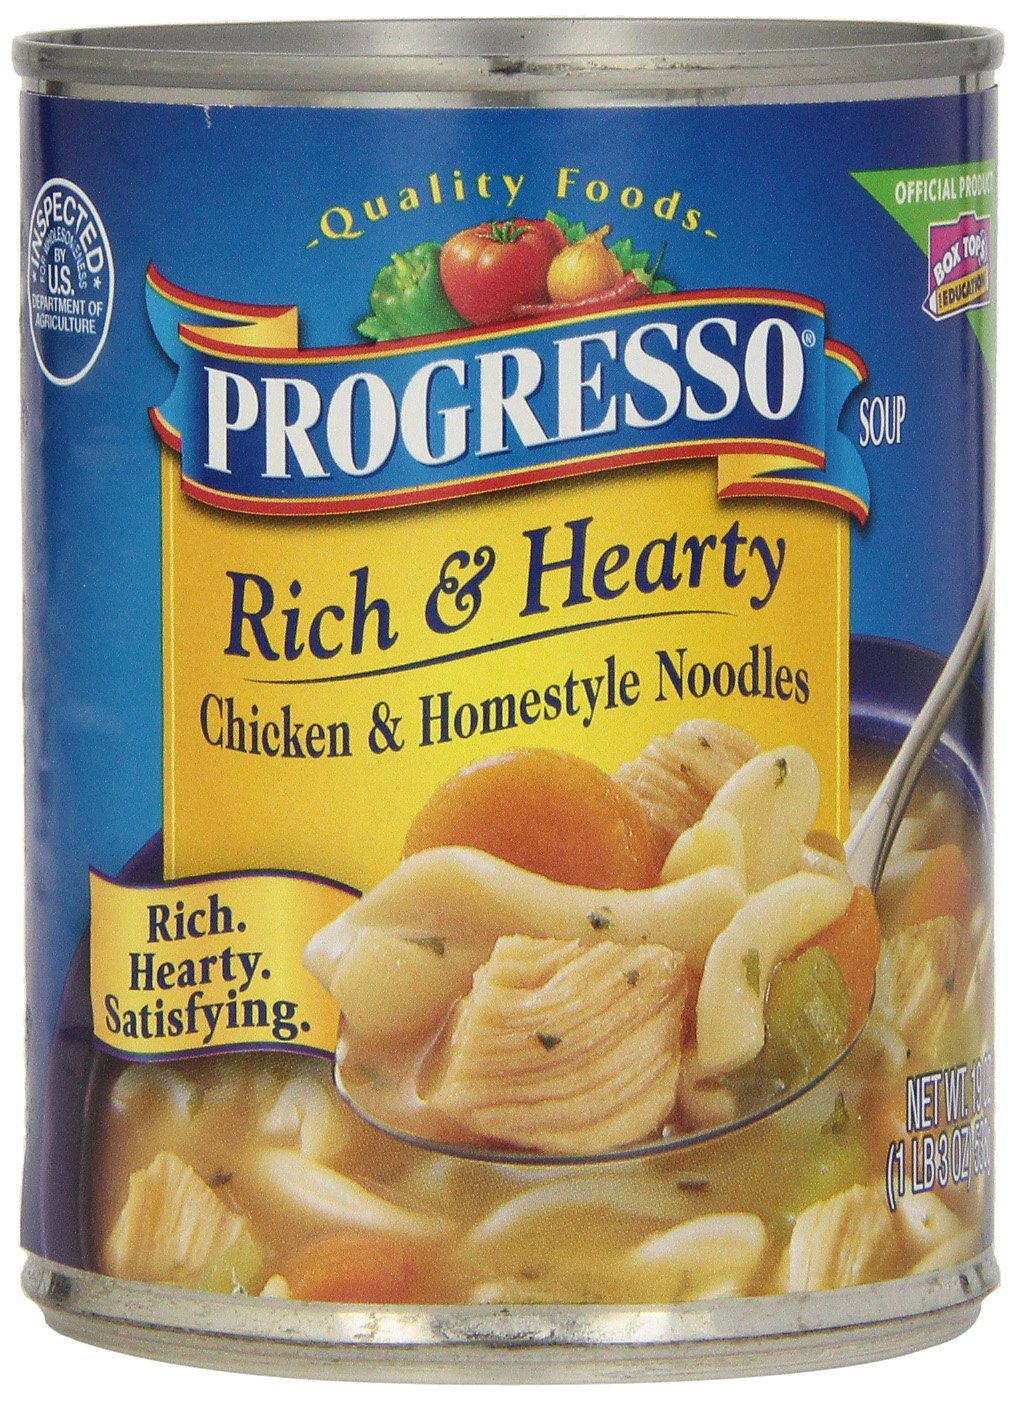 Progresso Rich & Hearty Soup, Chicken and Homestyle Noodles, 19-Ounce Cans (Pack of 12)